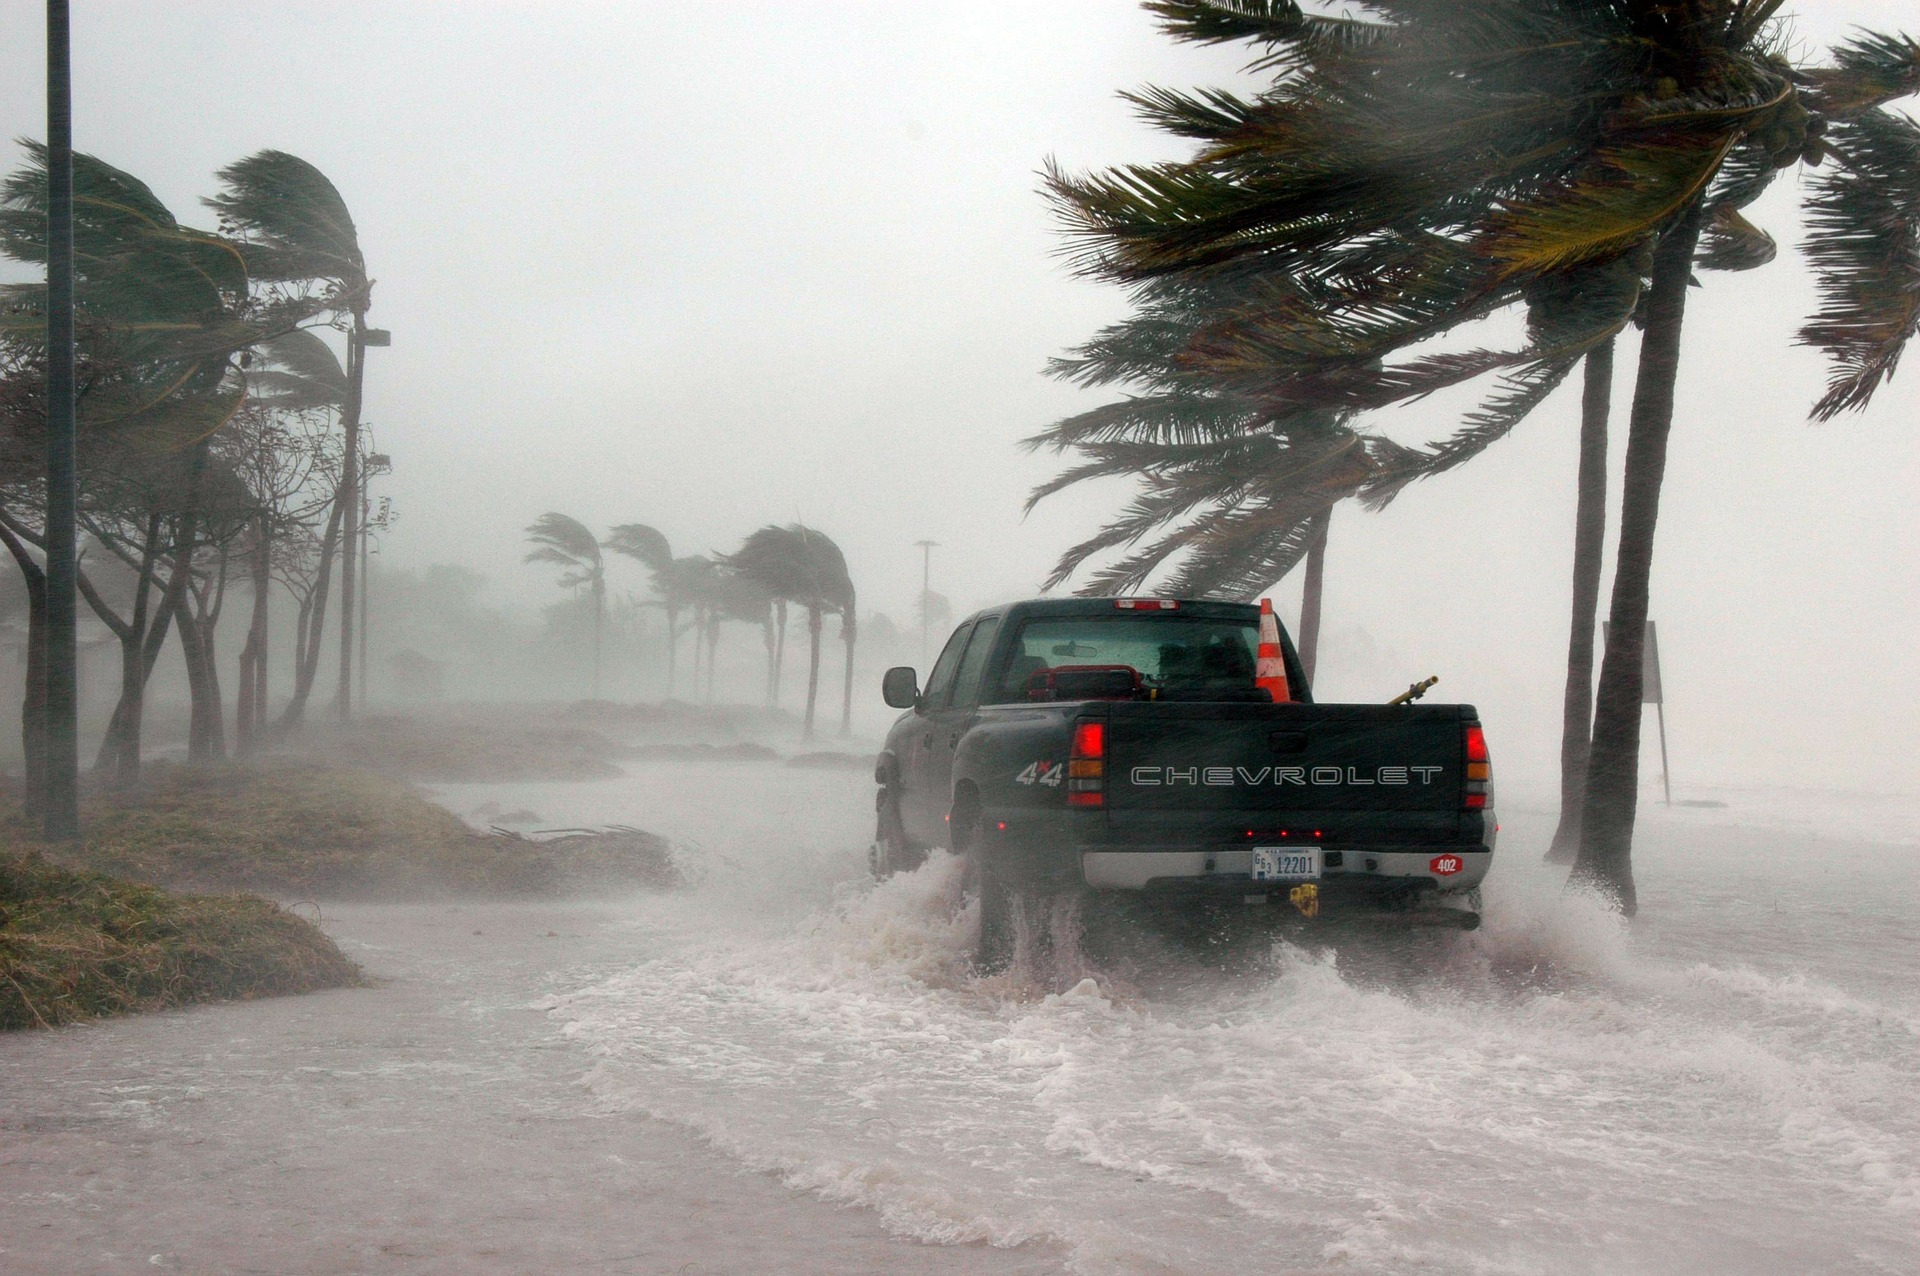 12019.    Pixabay   .  The U.S. Citizenship and Immigration Services (USCIS) offers immigration services that may help people affected by special situations , including severe storms such asHurricane Florence and Typhoon Mangkhut.